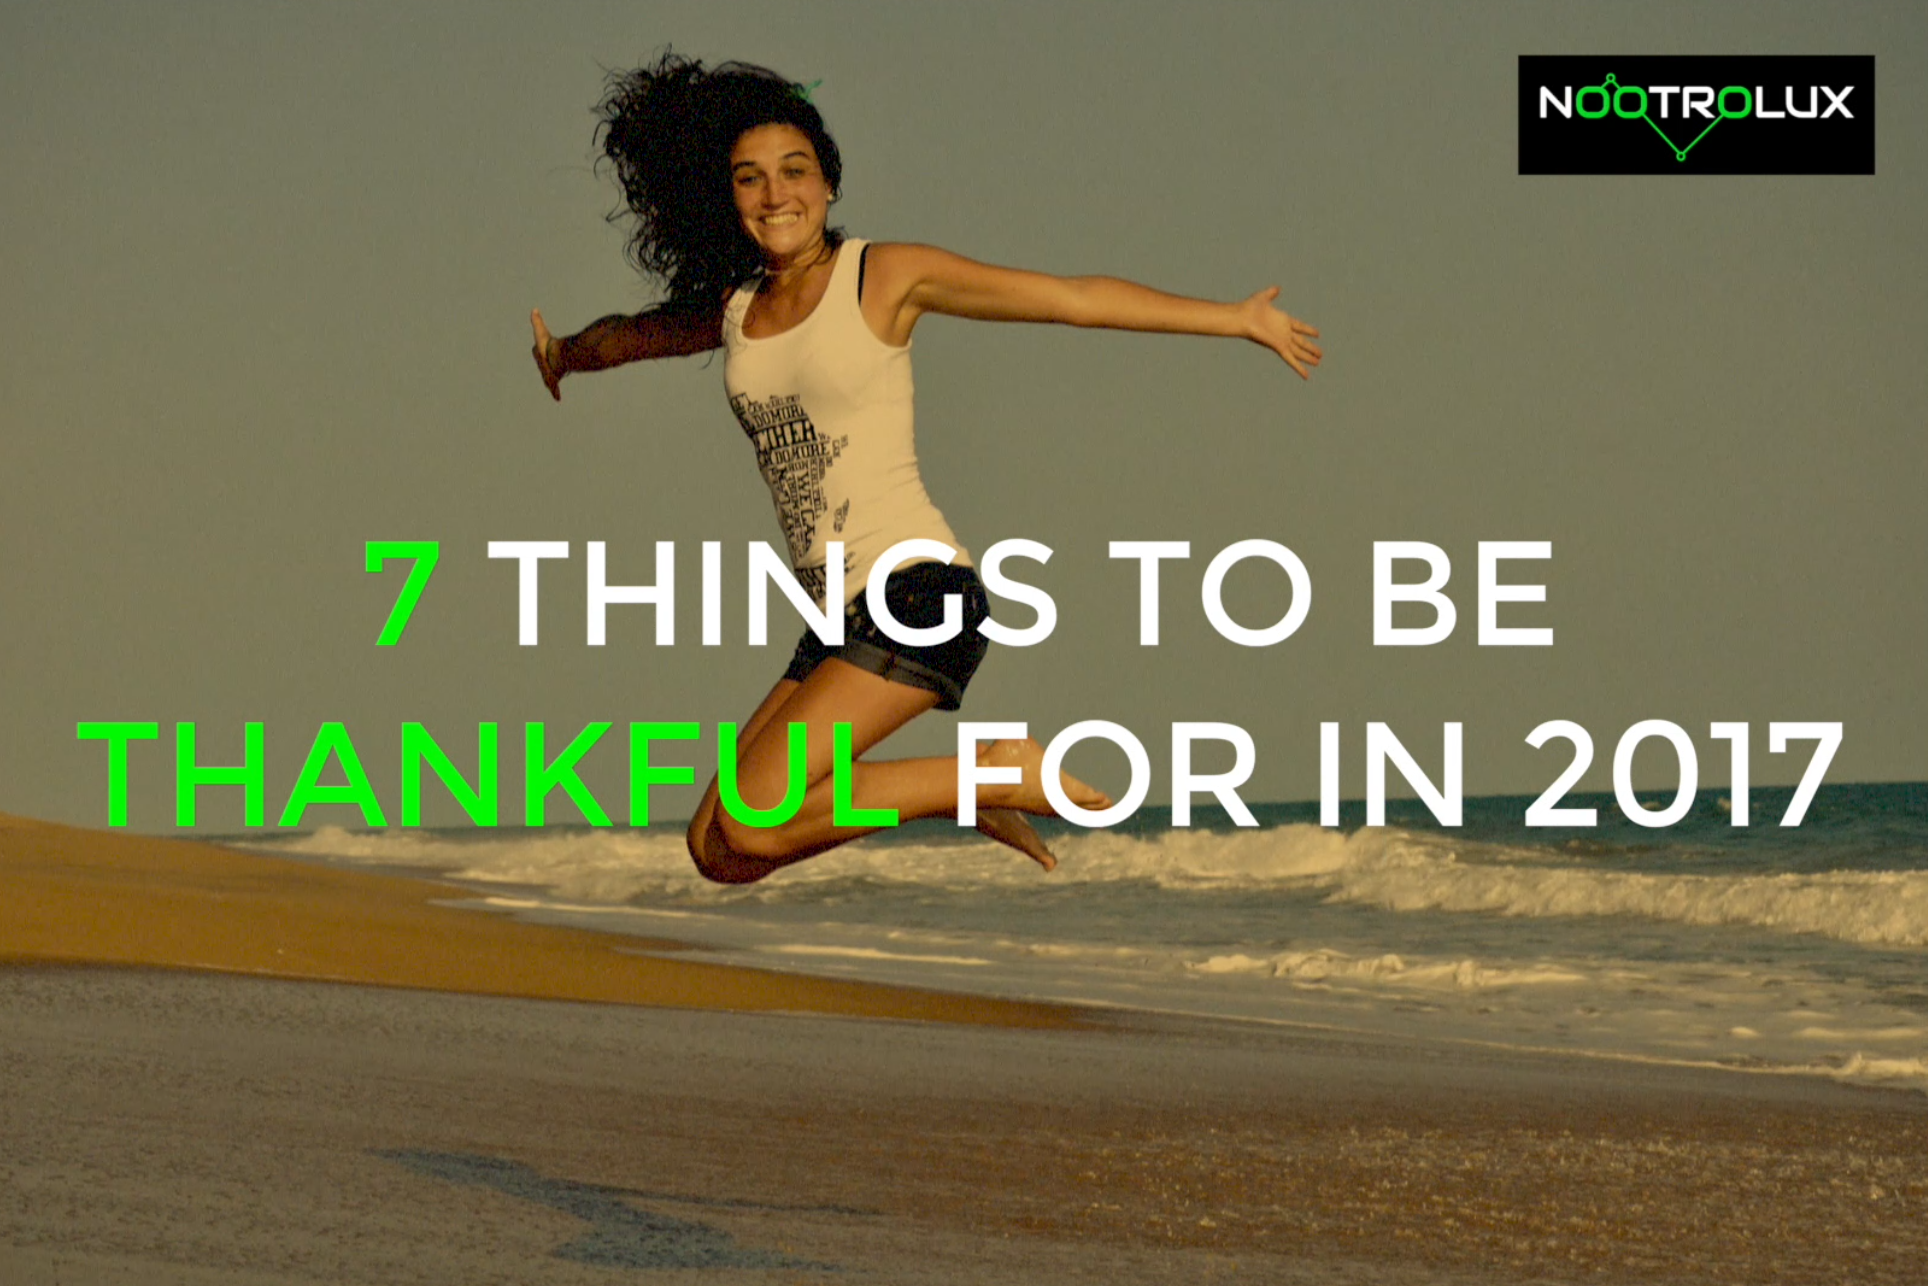 7 Things to be Thankful for in 2017